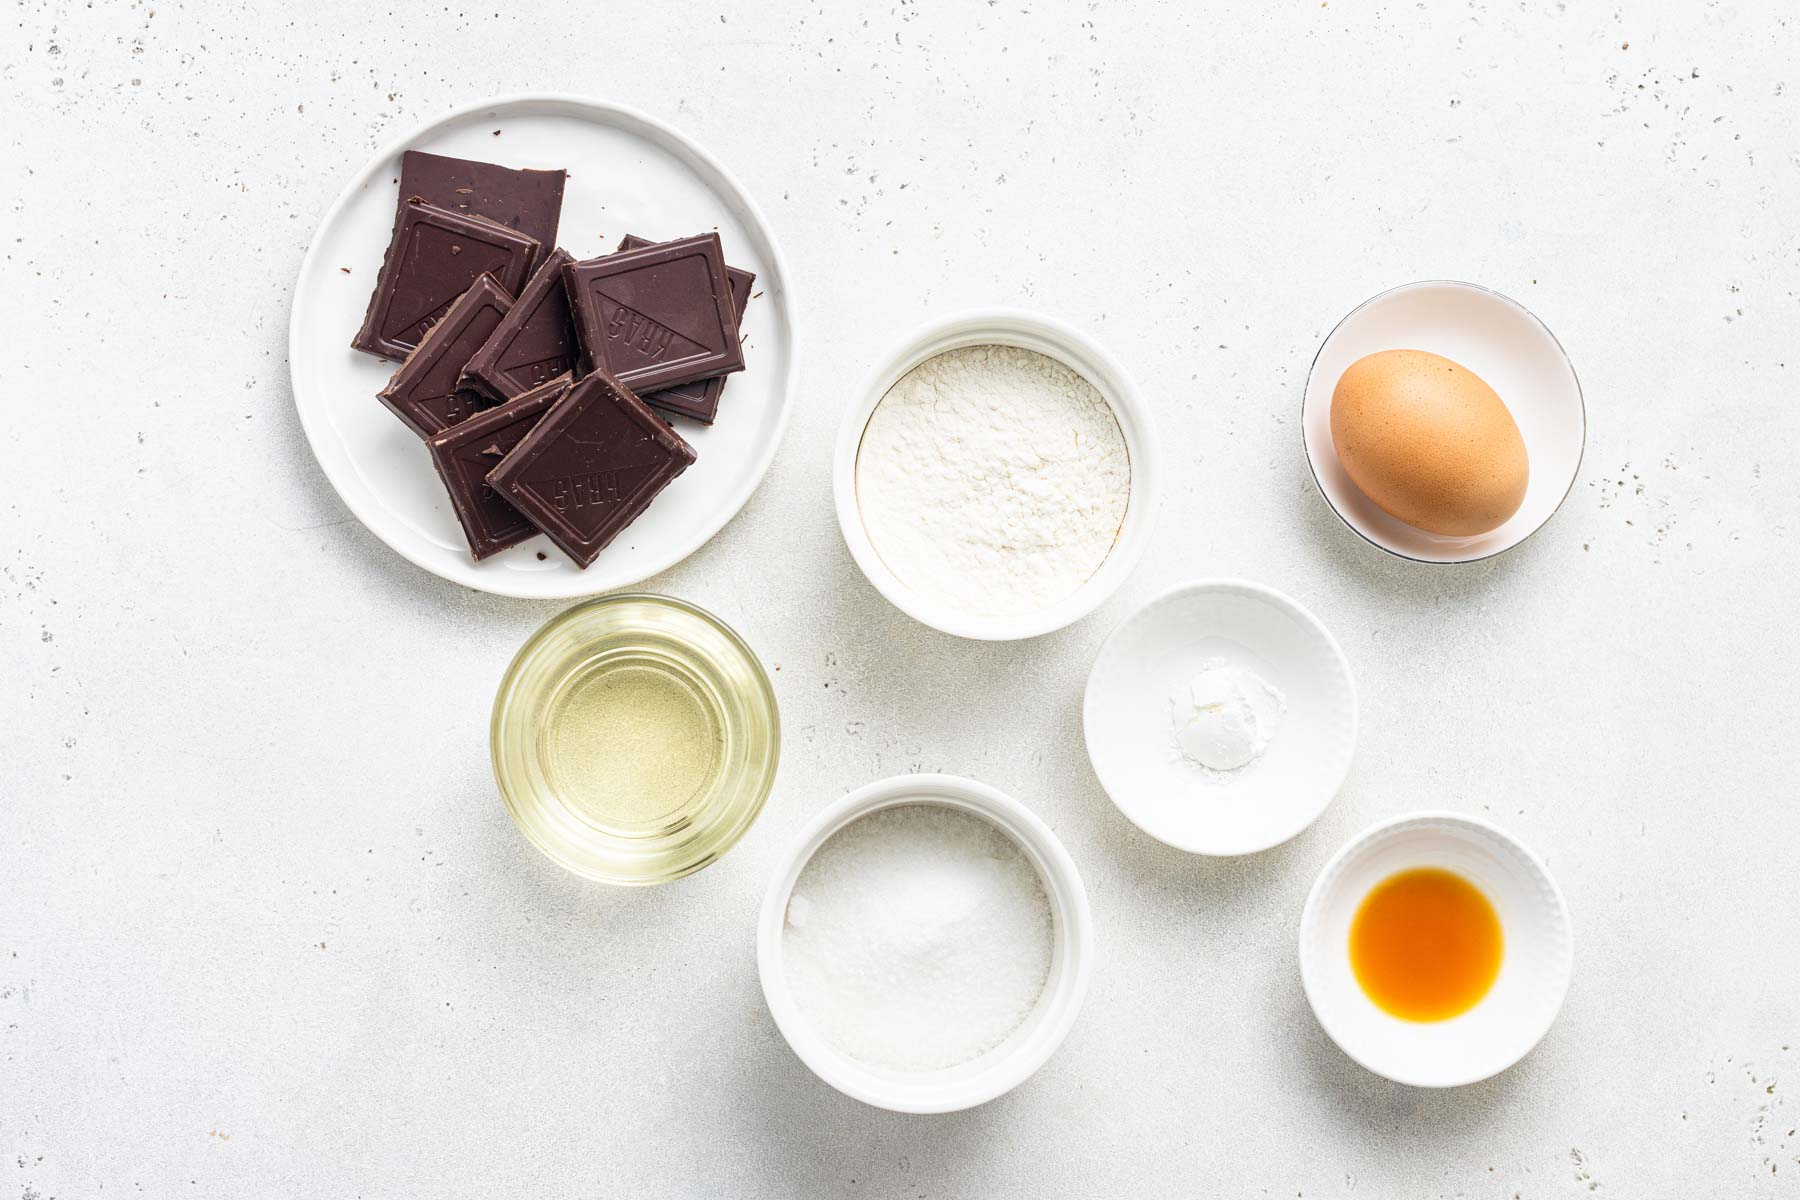 Ingredients to make a small batch of chocolate cupcakes on white table.